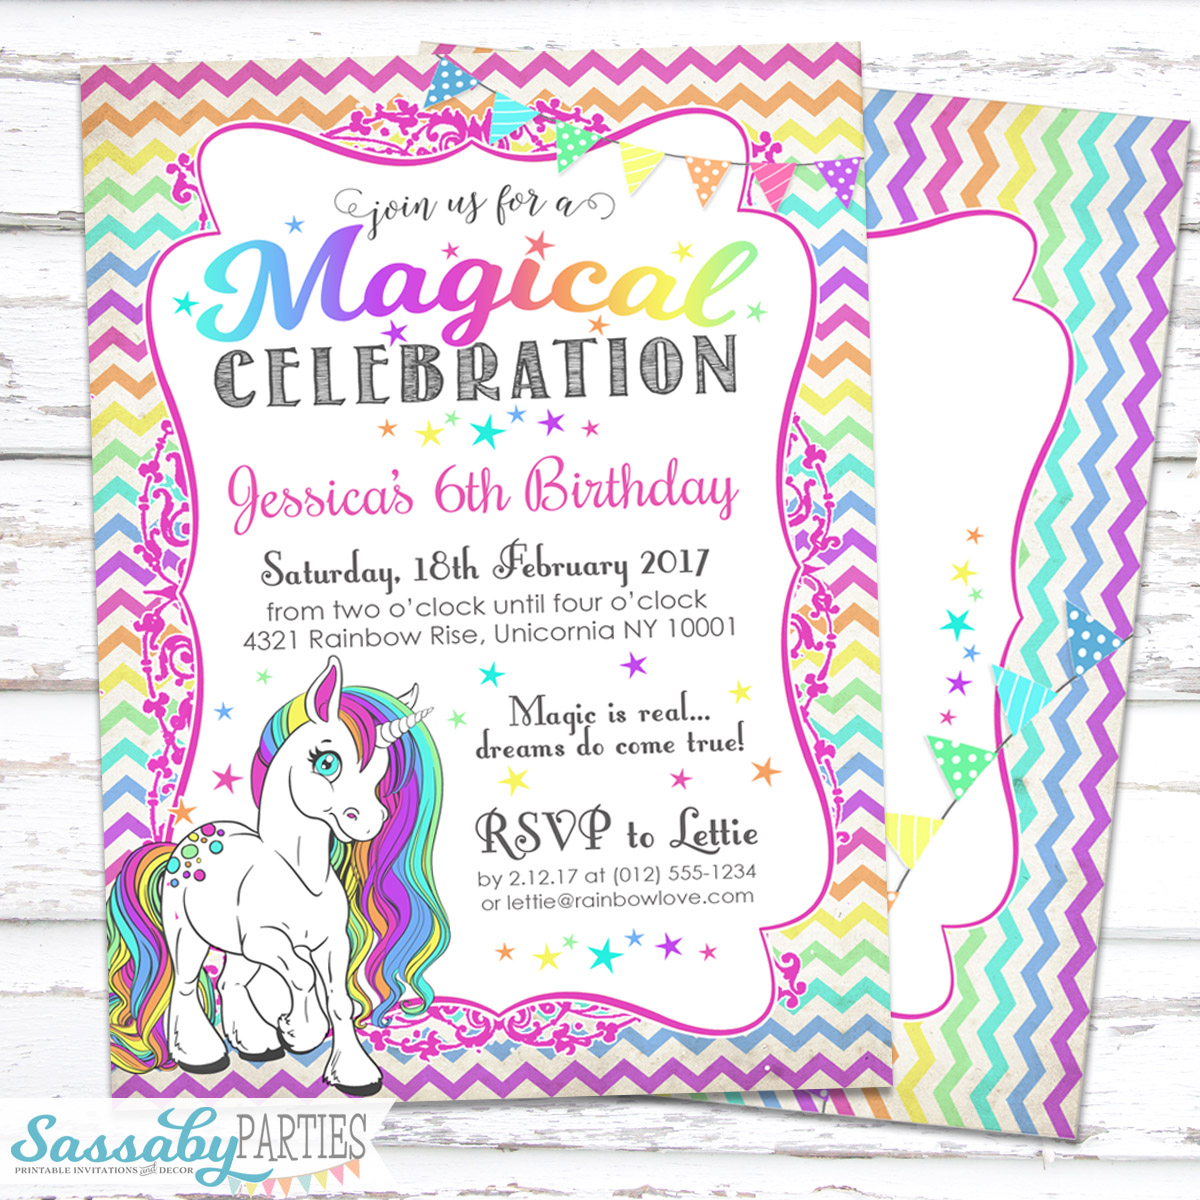 Baby Shower Invites For Girls is good invitation design